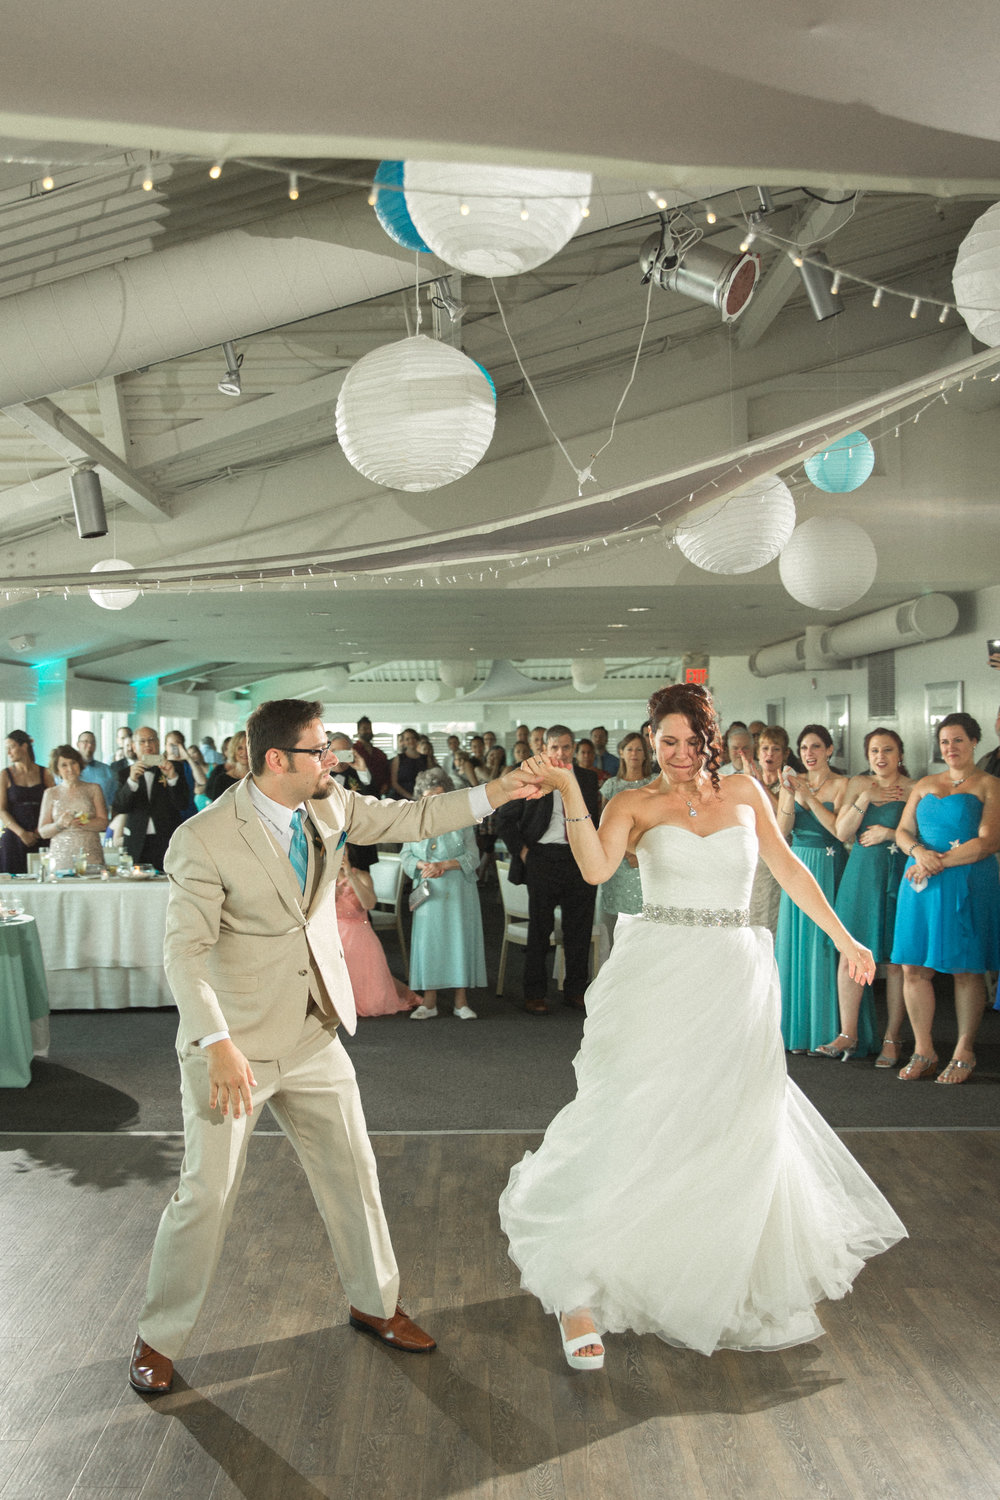 Modern First Dance of the Bride and Groom